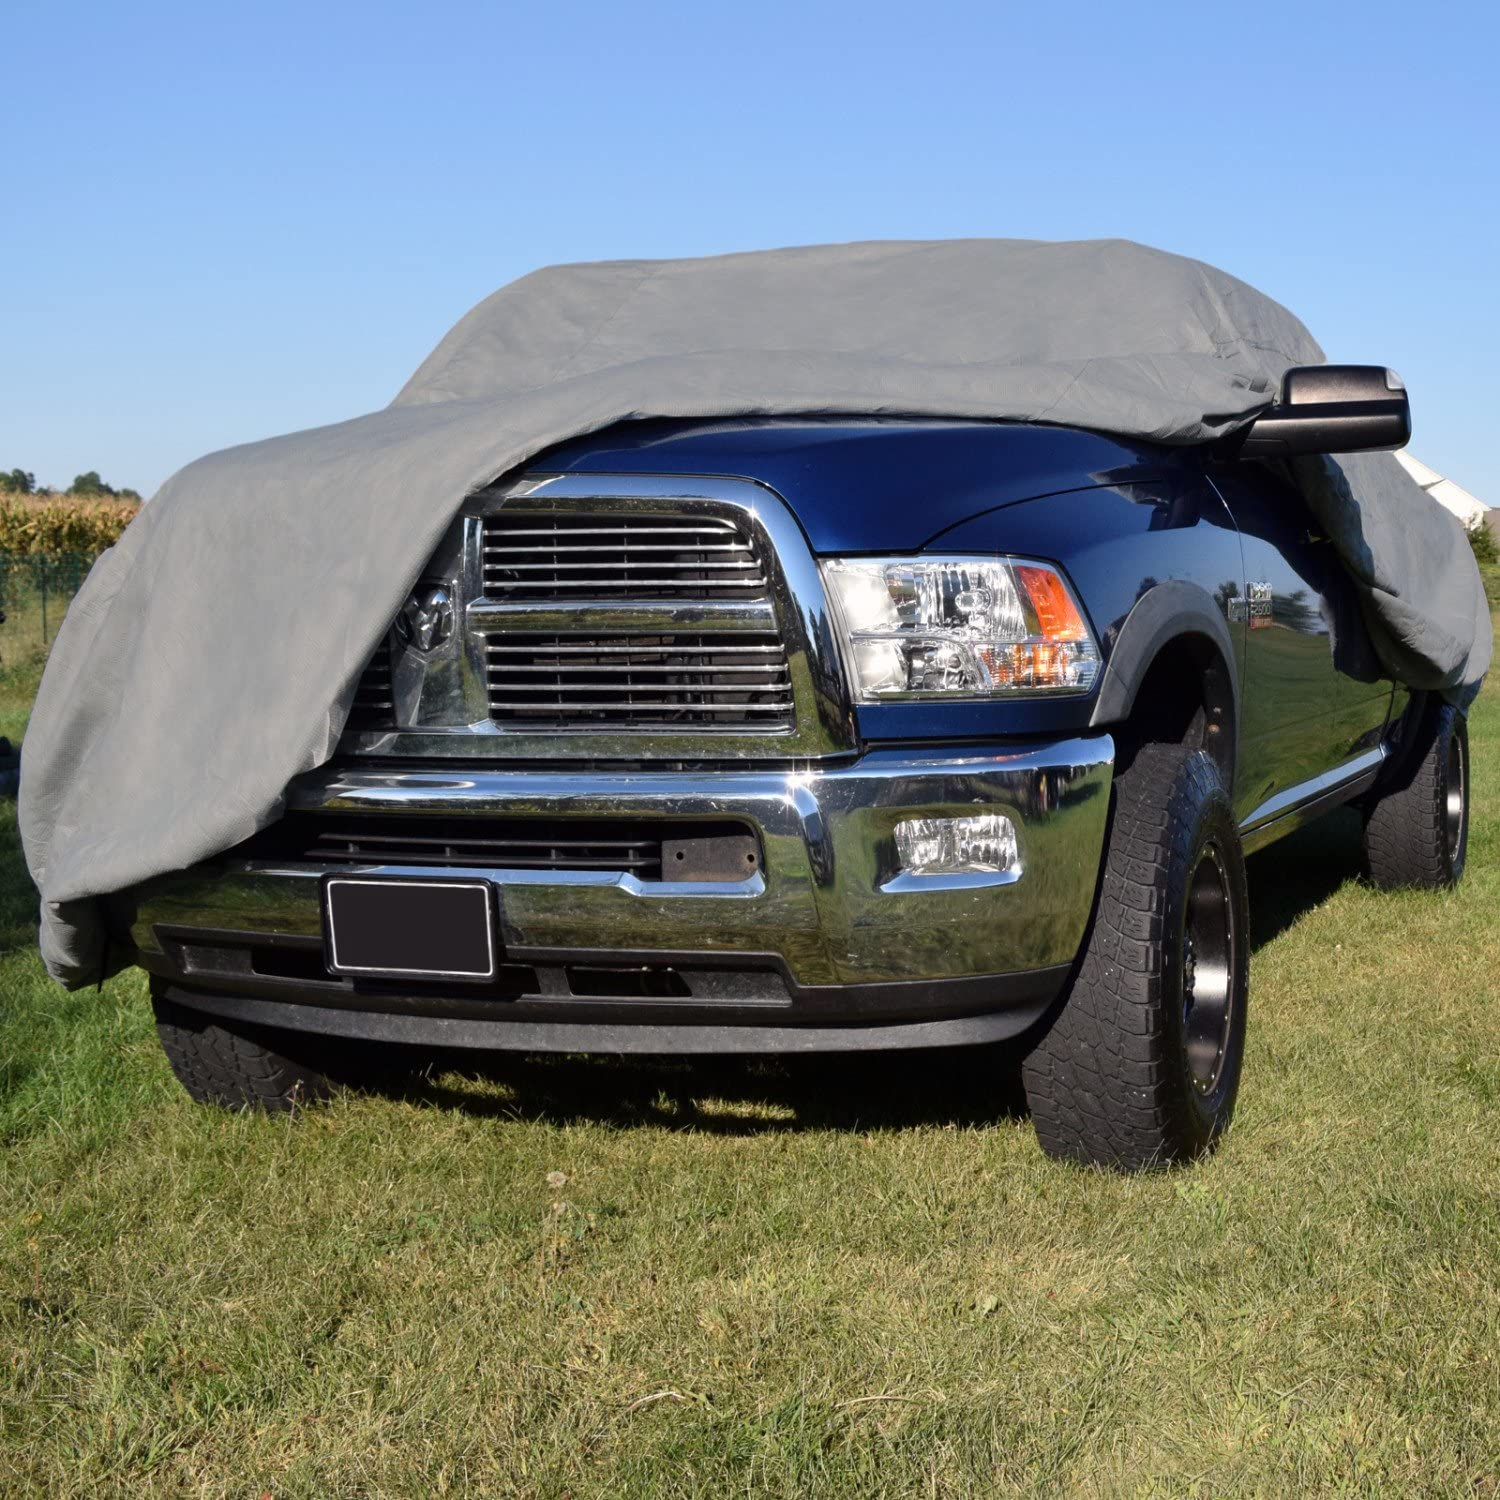 Budge Duro 3 Layer Truck Cover Water Resistant Fits Trucks up to 22 Scratchproof Gray Dustproof Cover